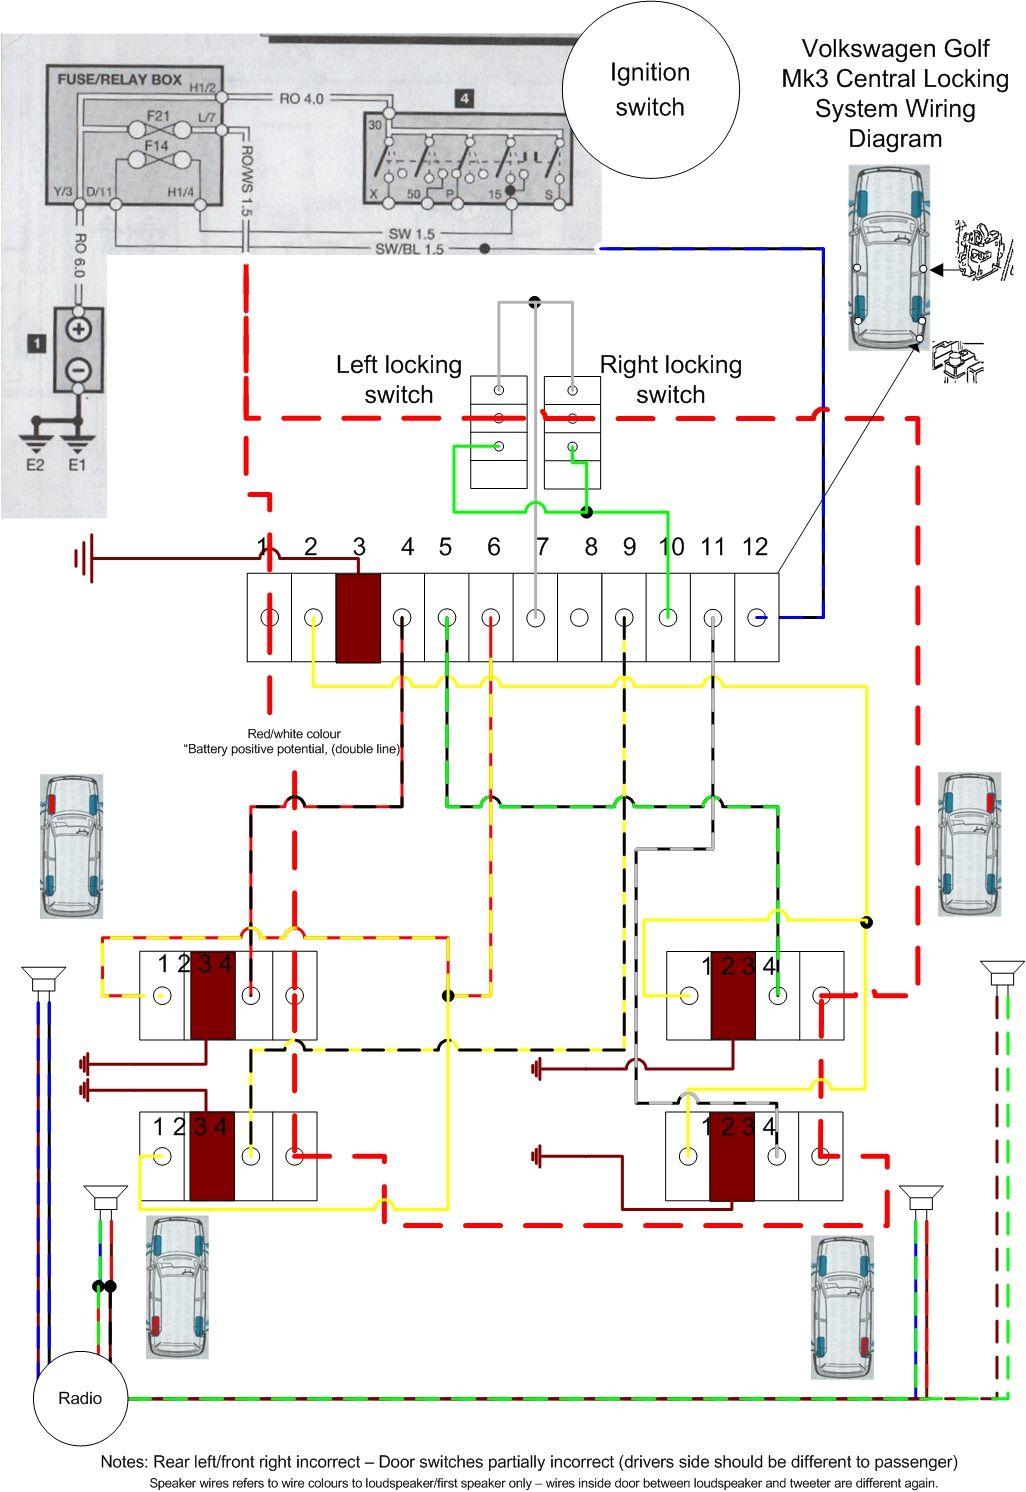 vw ignition switch wiring diagram